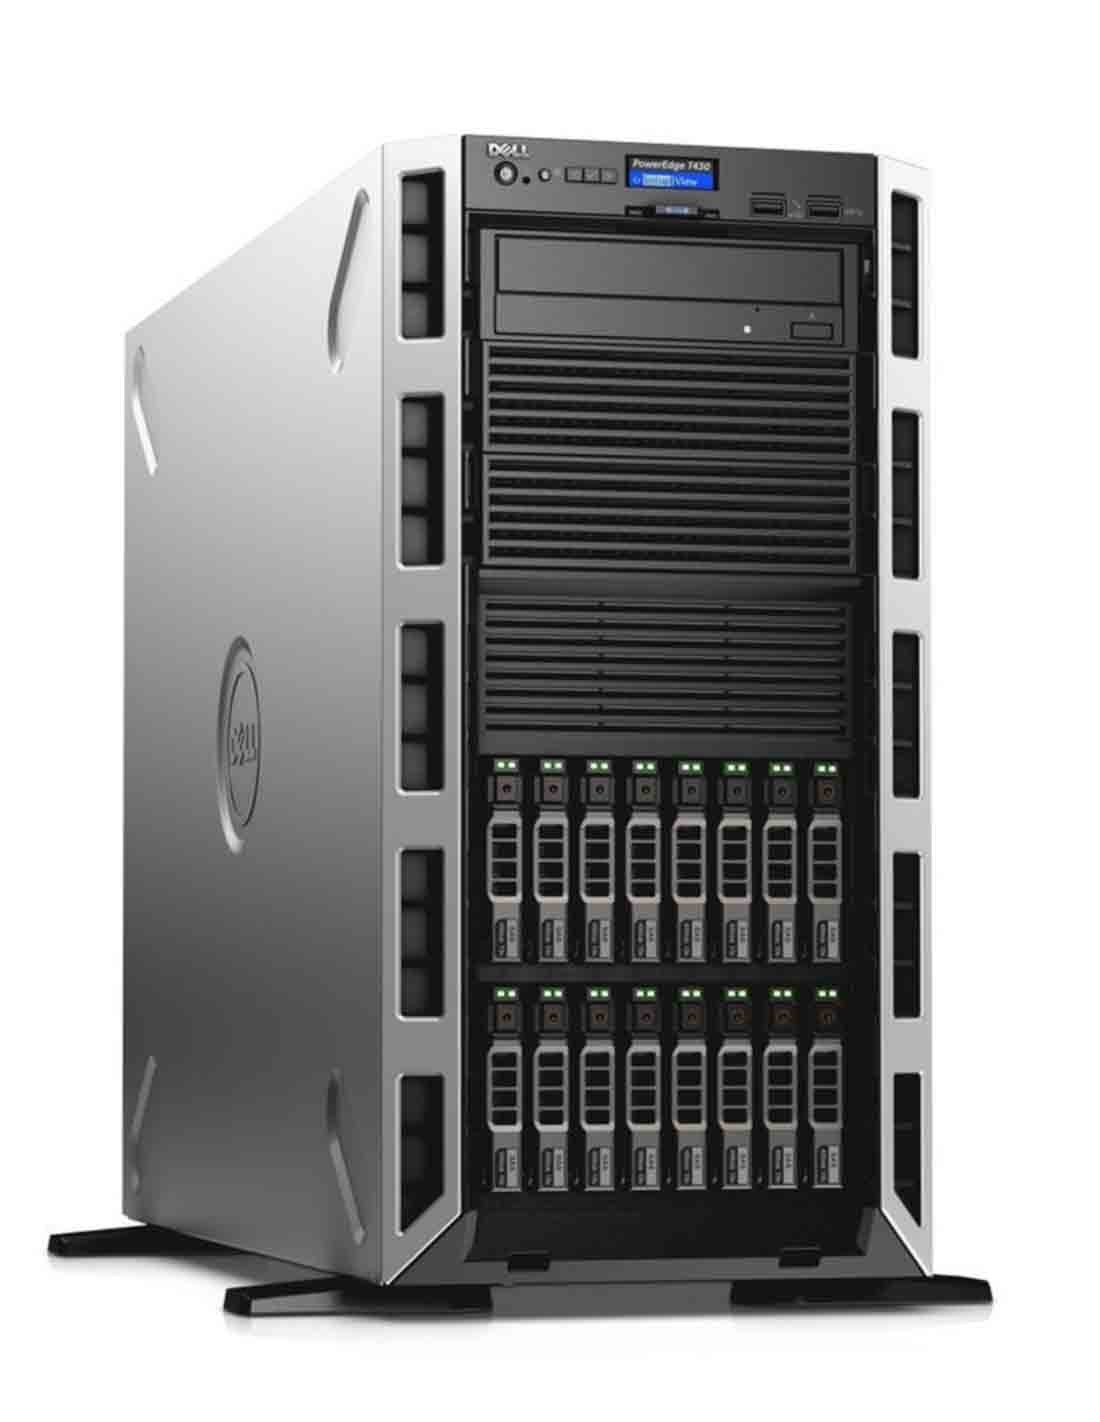 Dell PowerEdge T430 Tower Server Buy at an affordable price in UAE